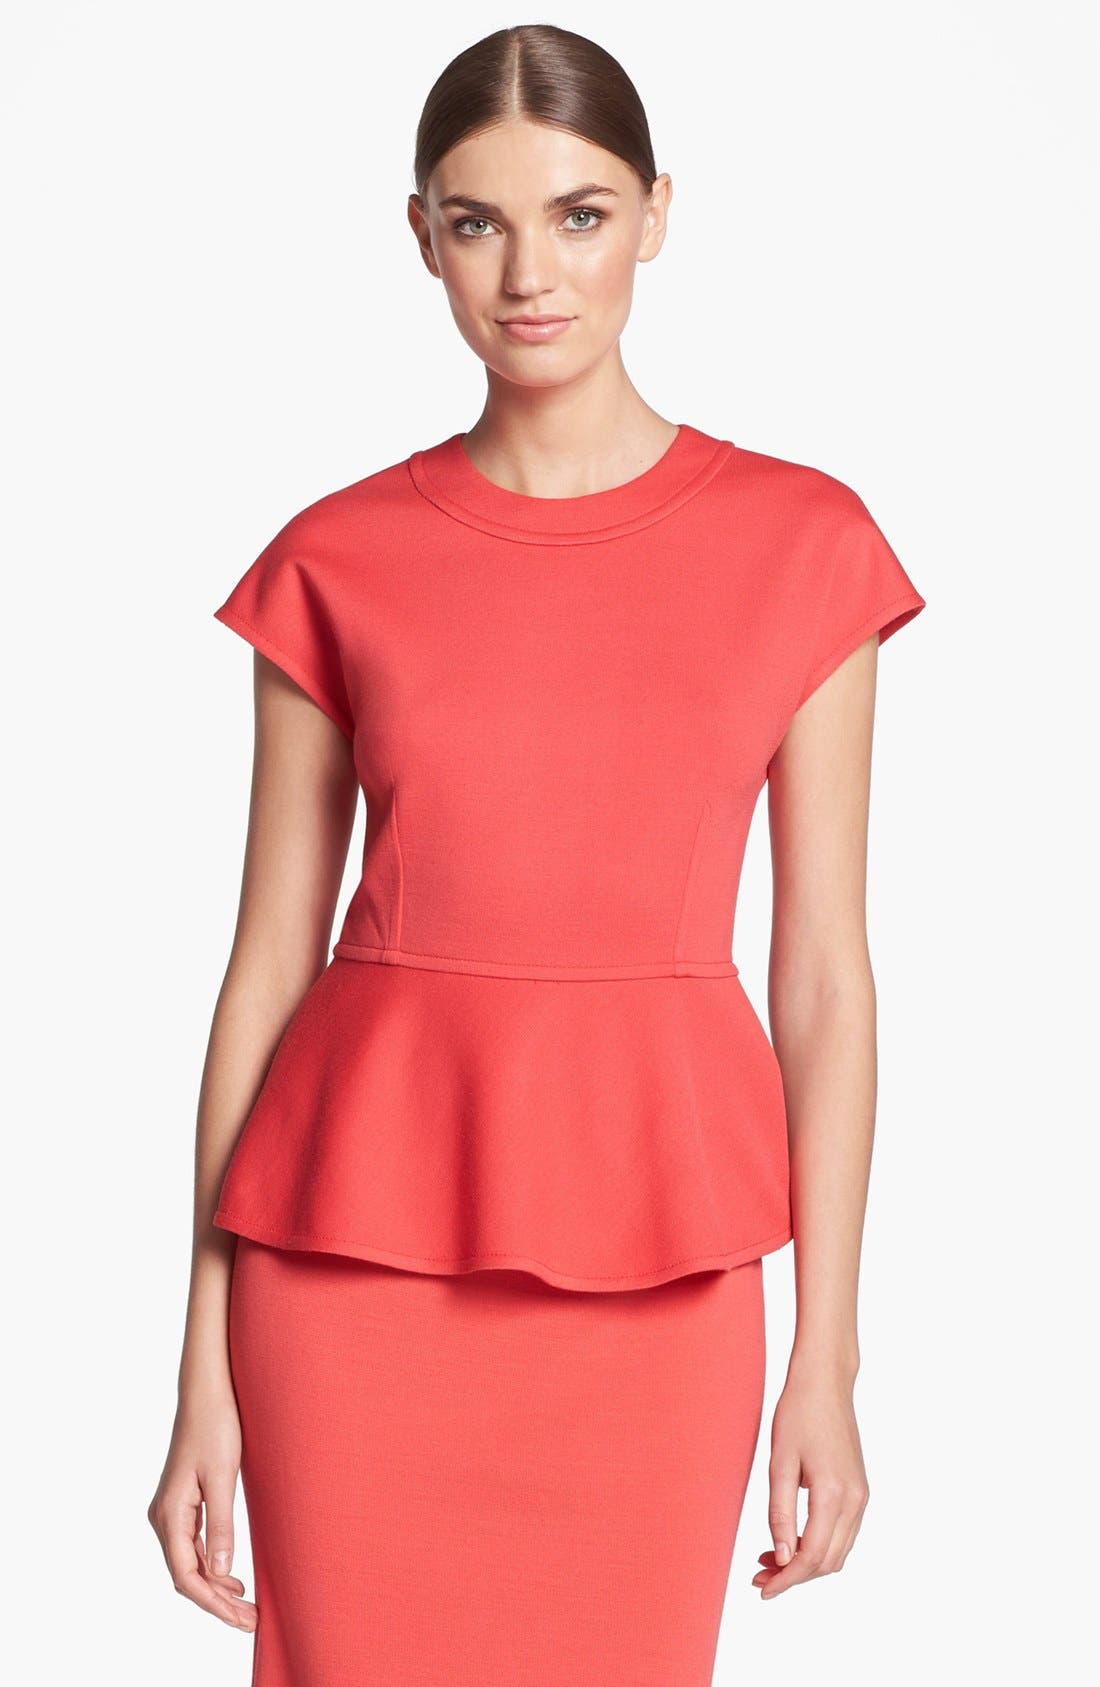 Alternate Image 1 Selected - St. John Collection Cap Sleeve Milano Knit Peplum Top